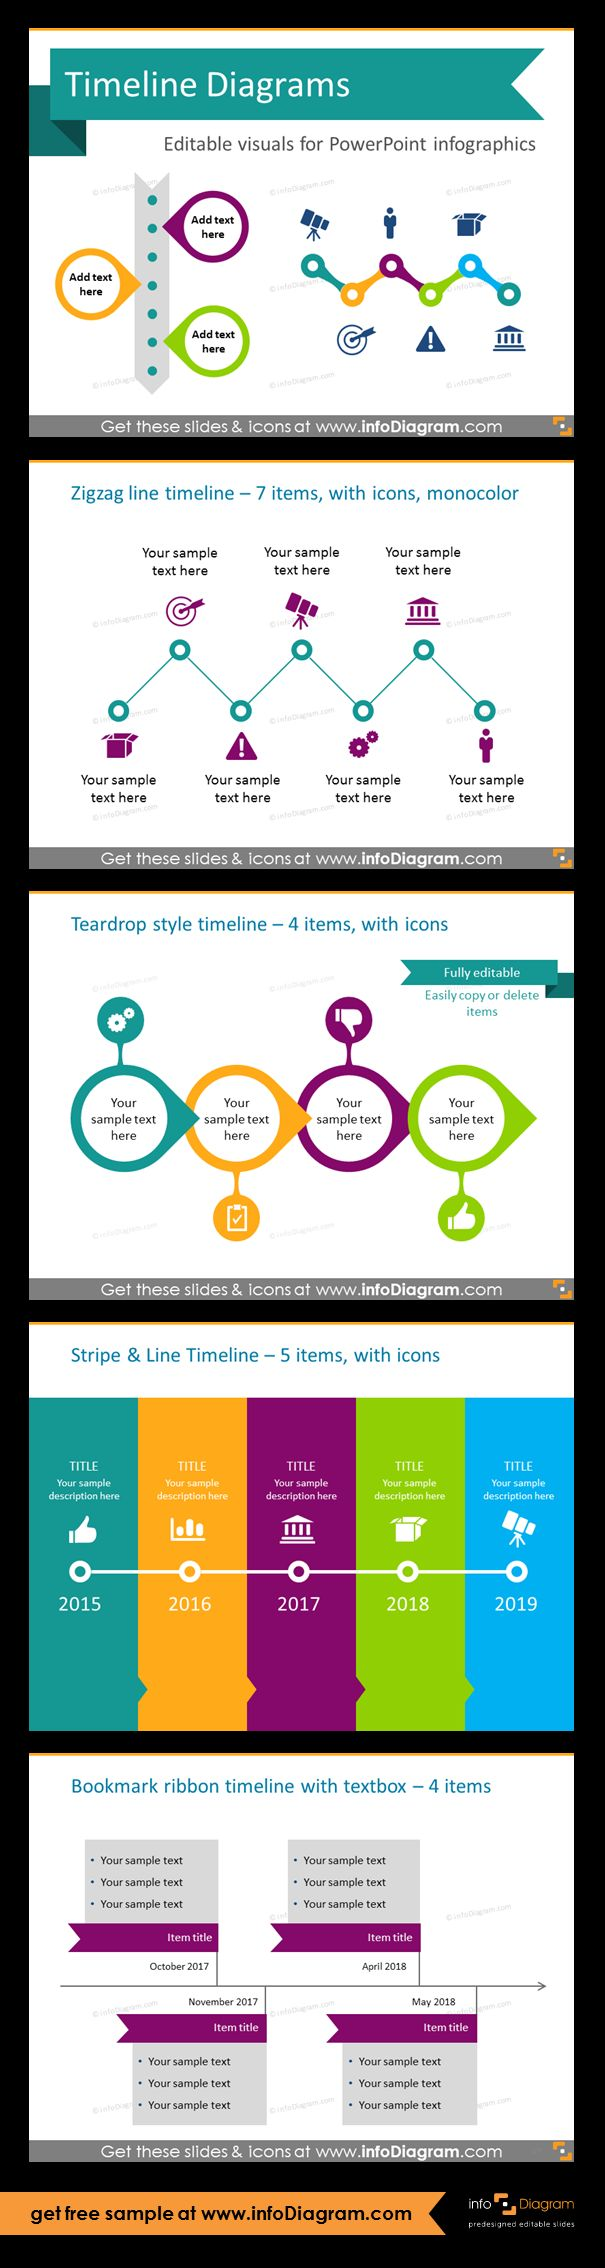 Template slides for Timeline diagrams and Time infographics. Editable PowerPoint graphics for showing history, agenda, linear process flow charts, project timelines, planning phases and roadmaps by modern infographics. Zigzag, teardrop style, stripe and line, bookmark ribbon timelines. Add teardrops, ribbons and outlined circles as an inspiration how to organise the information on the slide, in case of presenting procedures or set of events in time, planning phases and agendas.